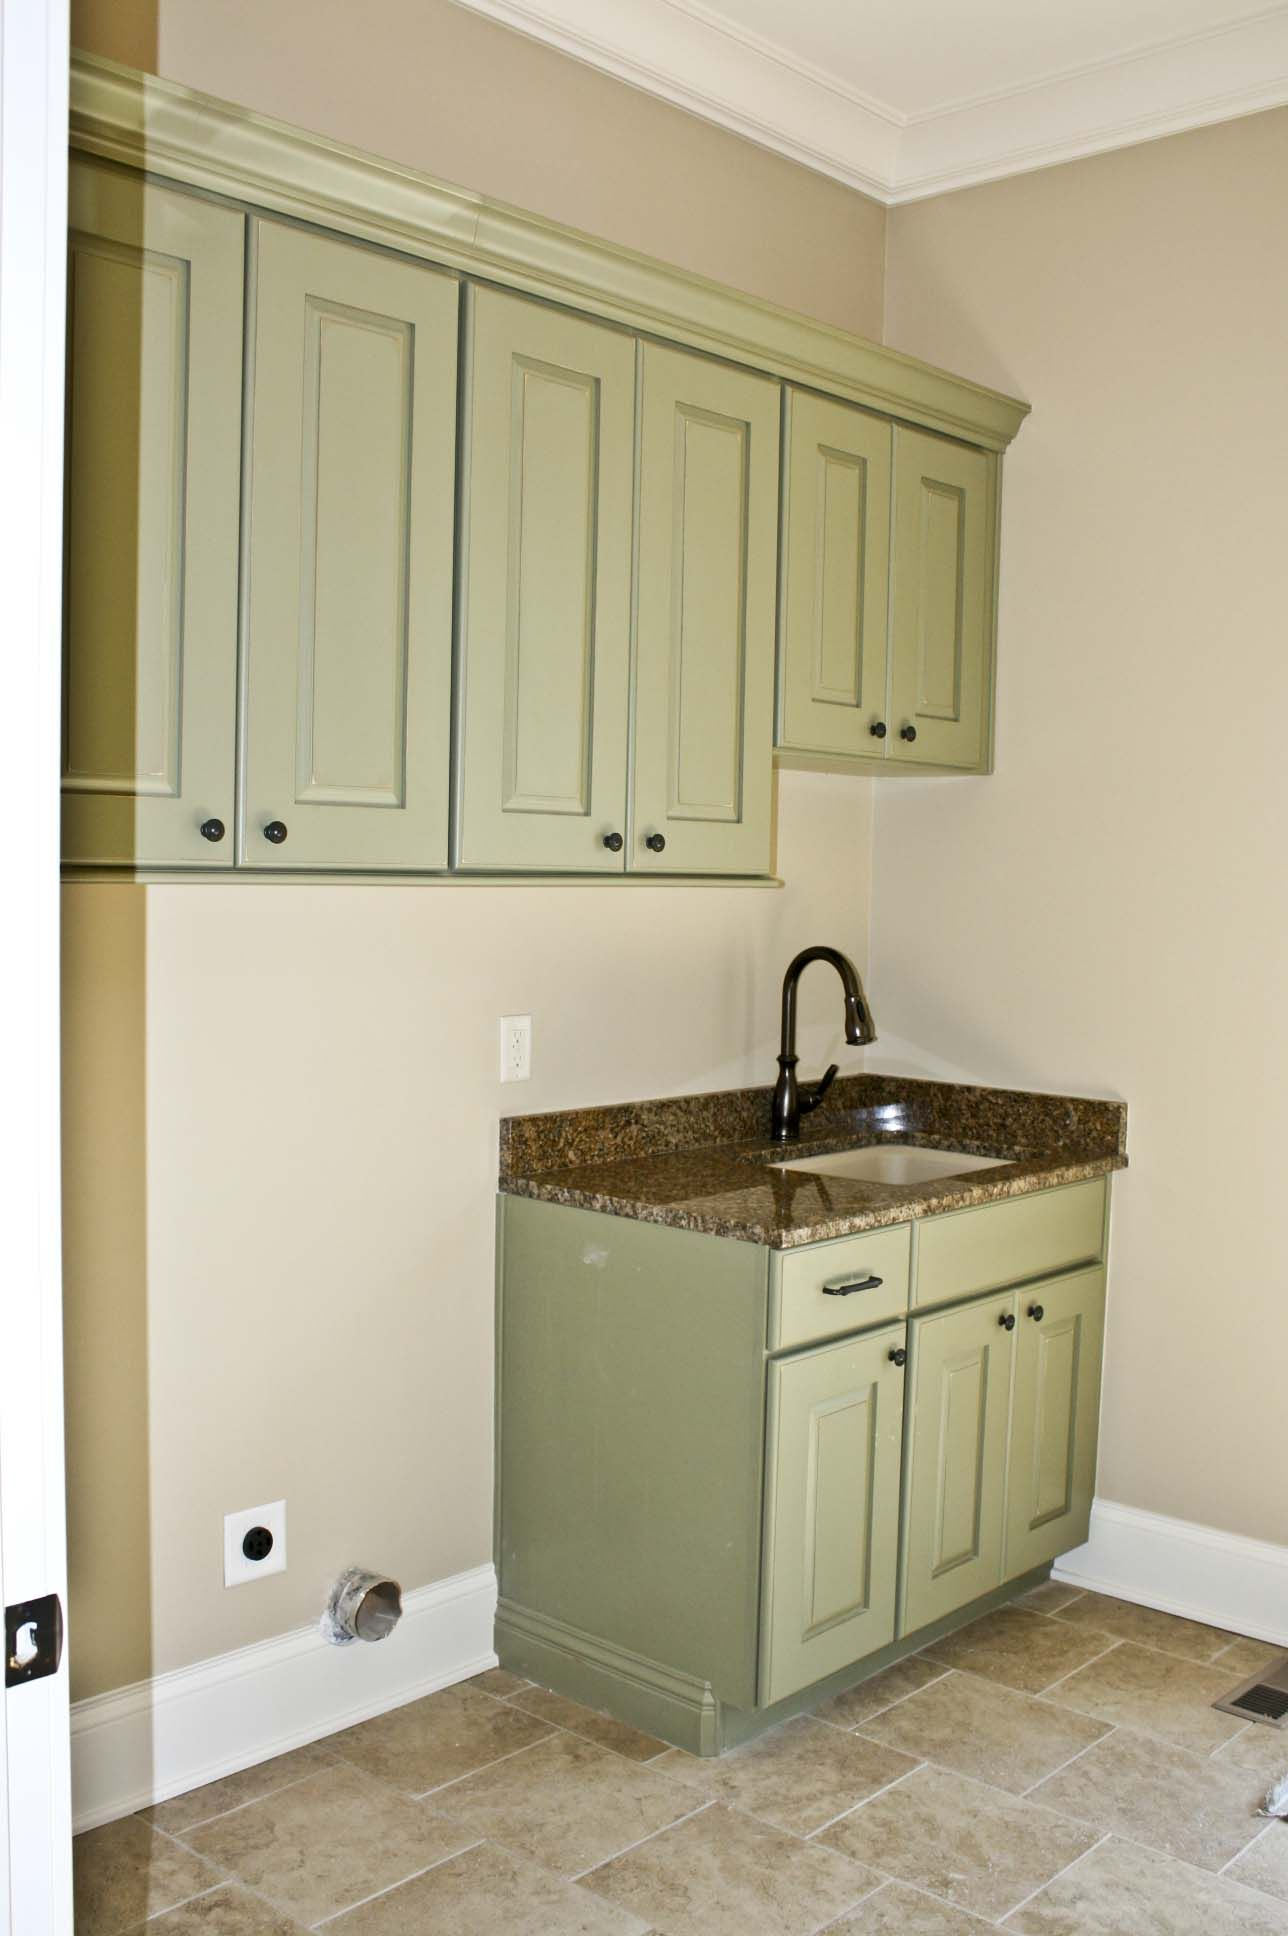 Koch Cabinets With Olive Finish Kitchen Cabinets Cabinet Custom Cabinetry